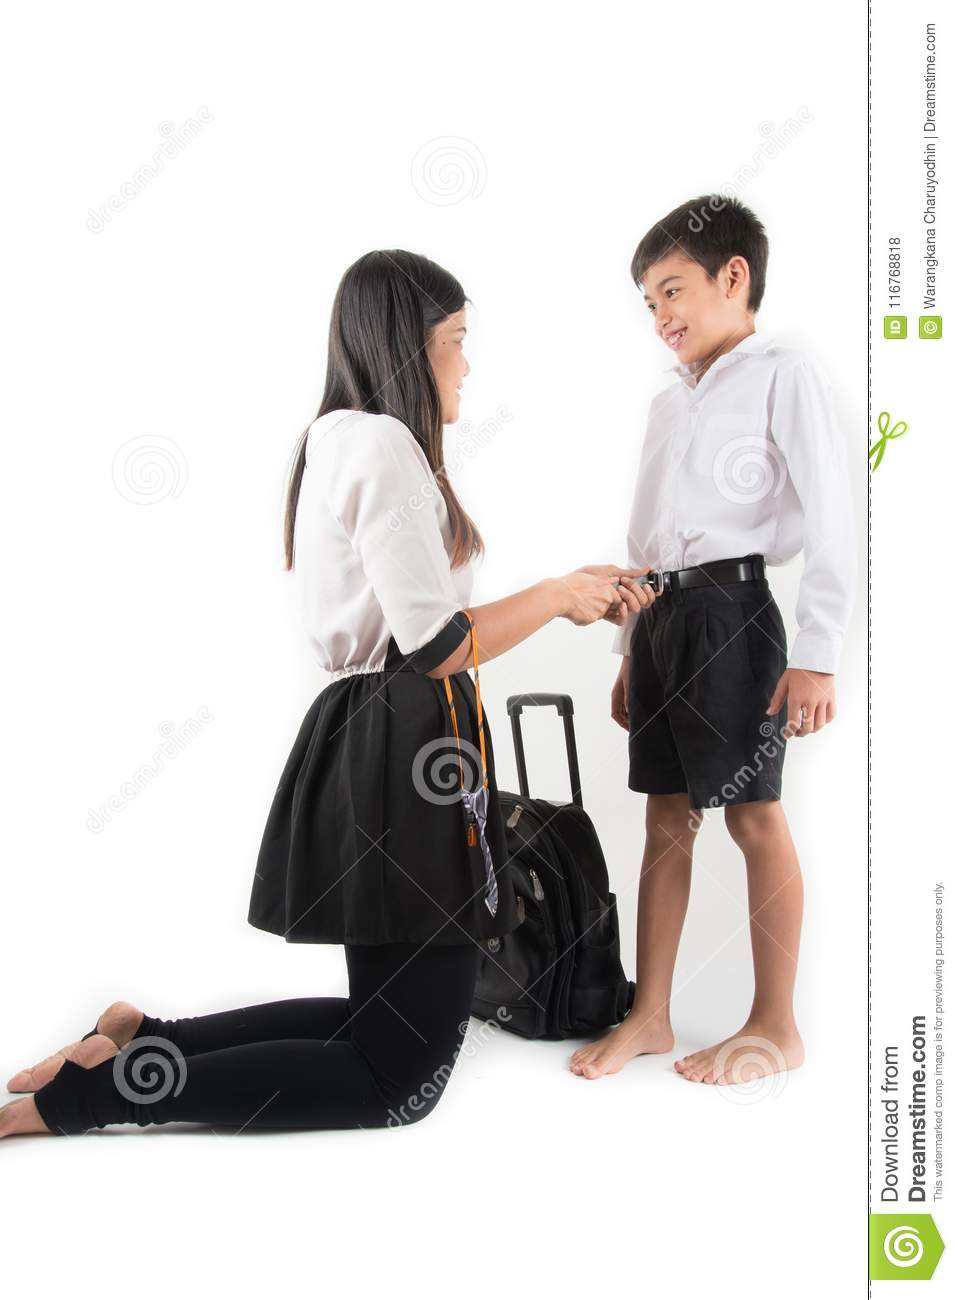 2a297eb90f24 Mother is helping school boy wear neck tie ready for school on the first day